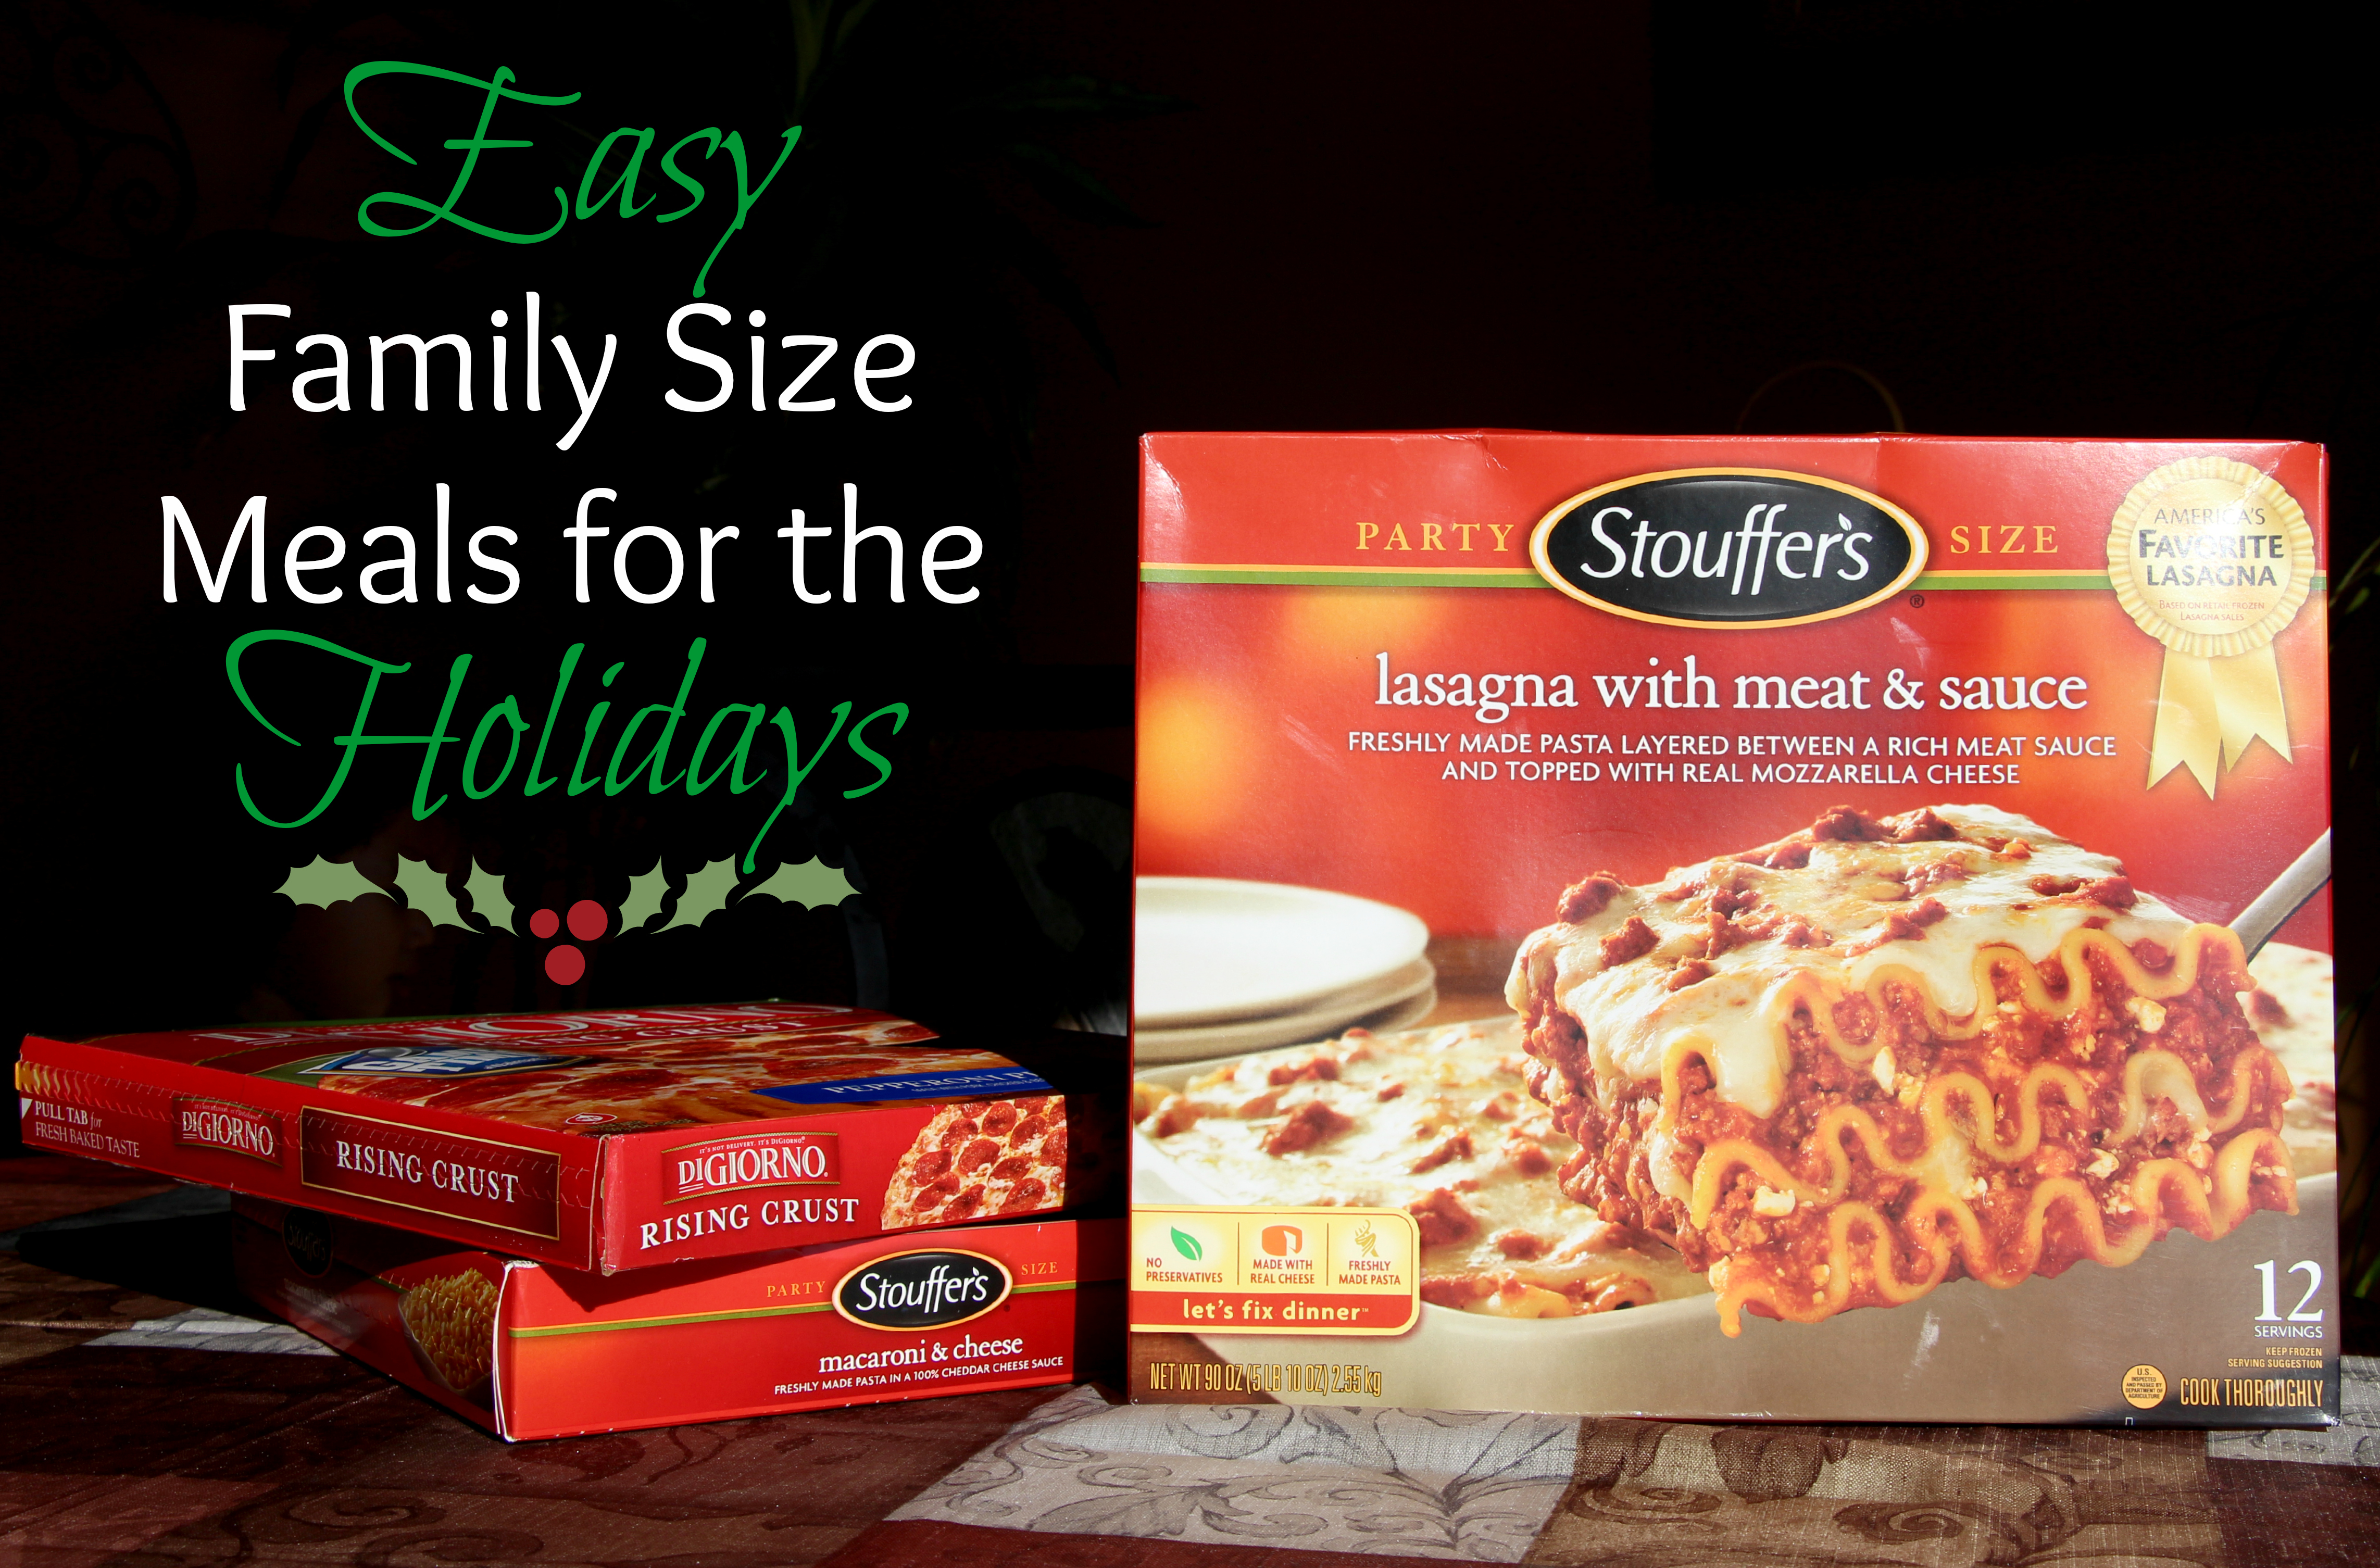 Easy Family Size Meals for the Holidays #shop